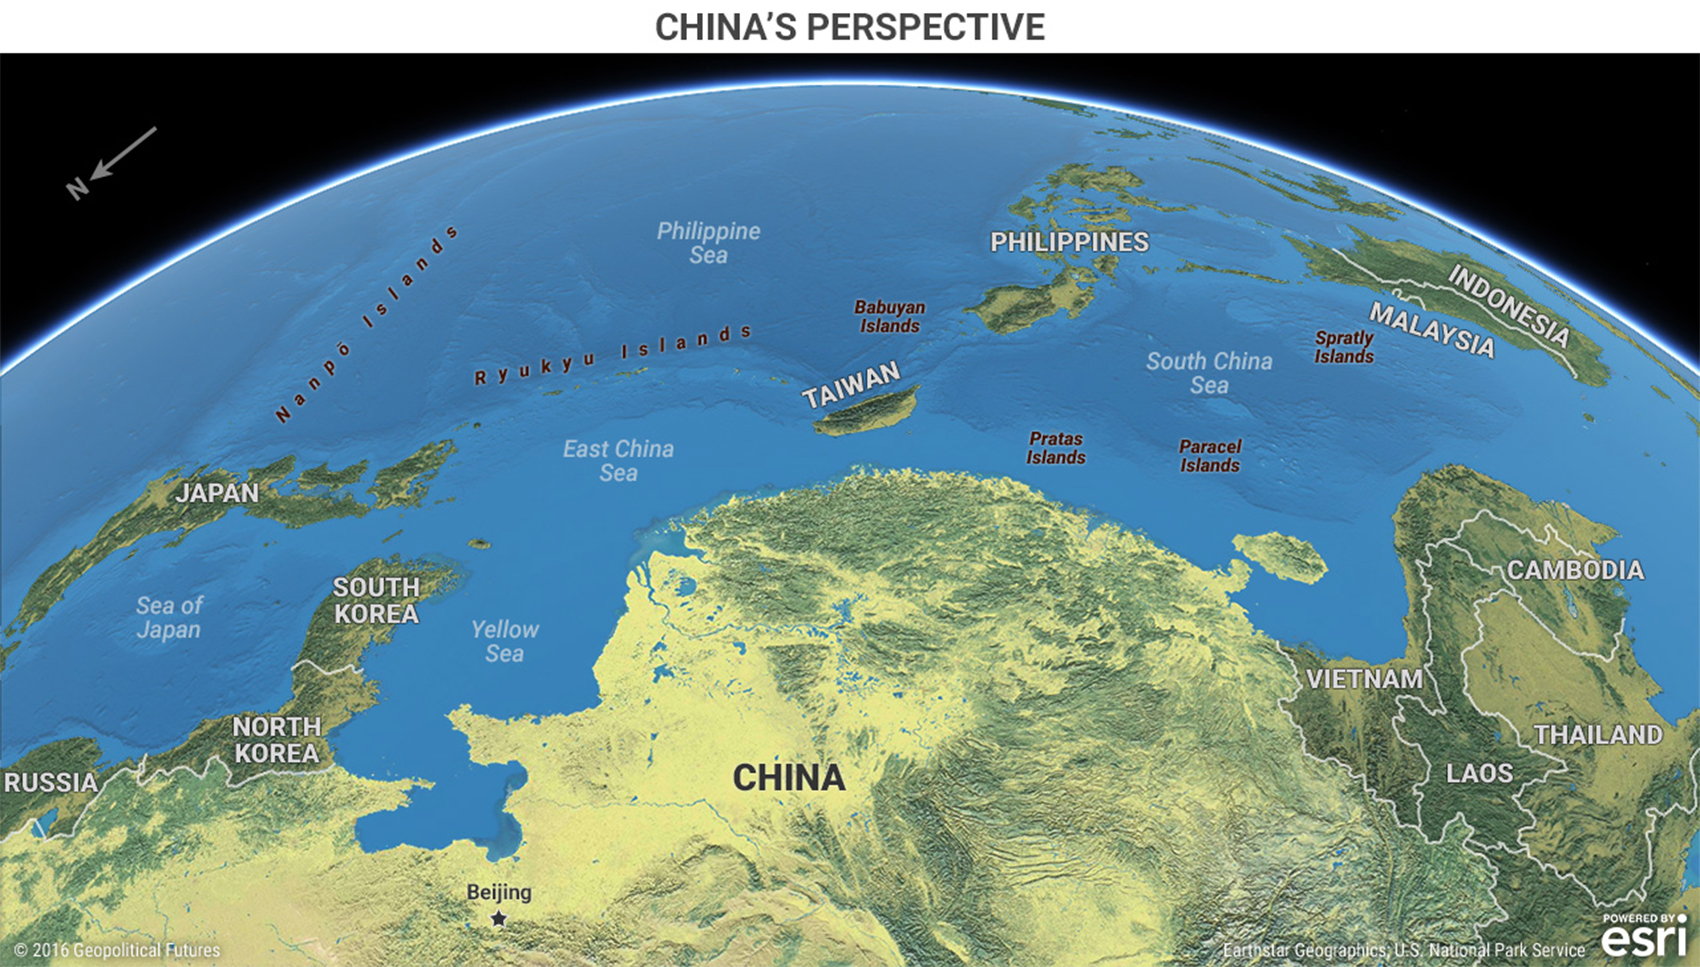 Maps that shift perspective can be disorienting